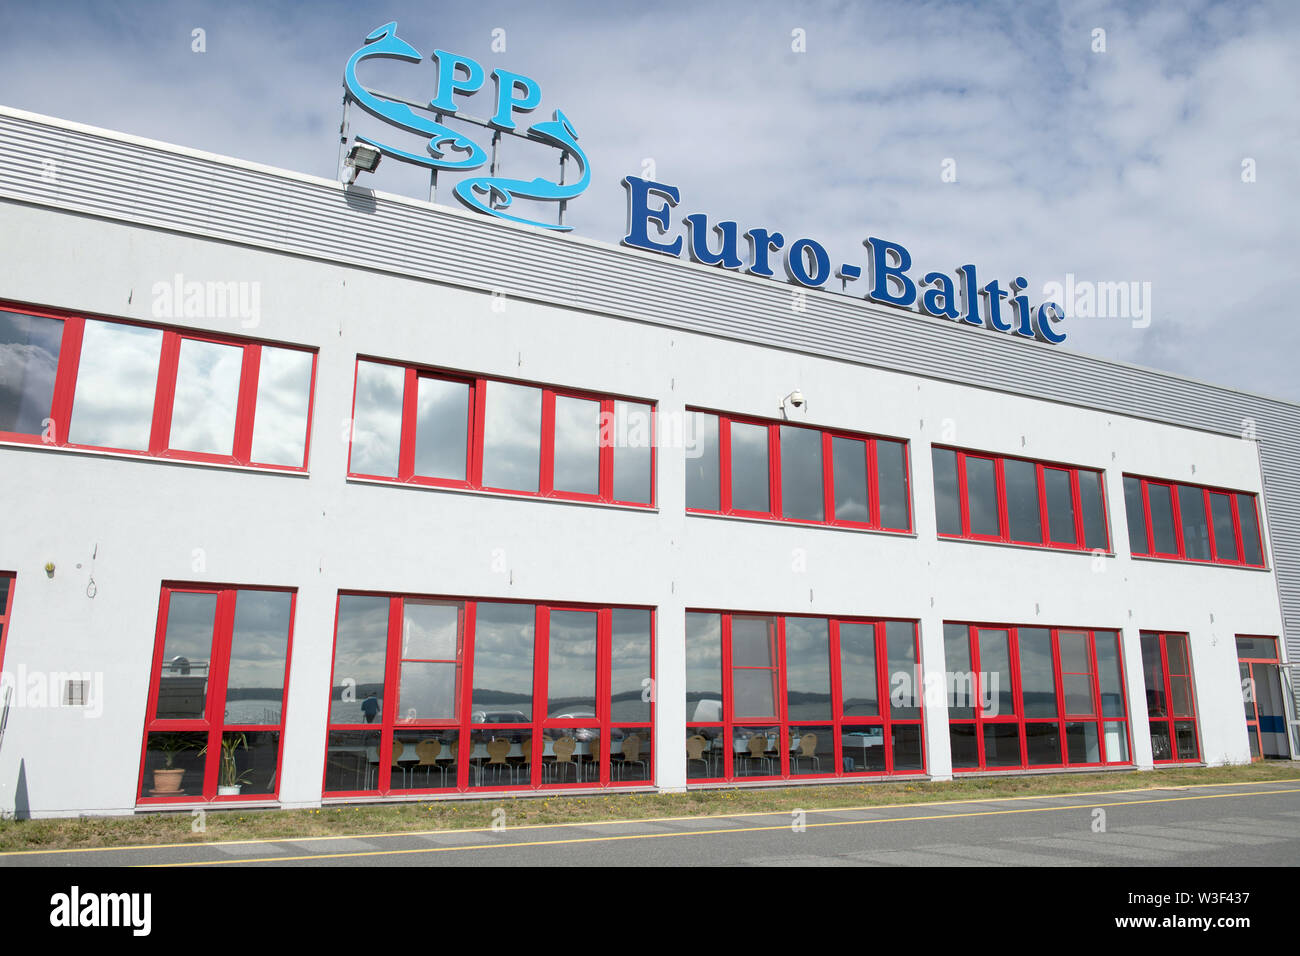 Sassnitz, Germany. 08th July, 2019. The factory building with the logo of the fish factory EuroBaltic of the Dutch Parlevliet & Van der Plas Group (P&P) in Sassnitz-Mukran. The EuroBaltic fishing plant on the island of Rügen is one of the largest fish processors in Europe, processing up to 50,000 tonnes of herring from the North and Baltic Seas. Credit: Stefan Sauer/dpa-Zentralbild/ZB/dpa/Alamy Live News - Stock Image